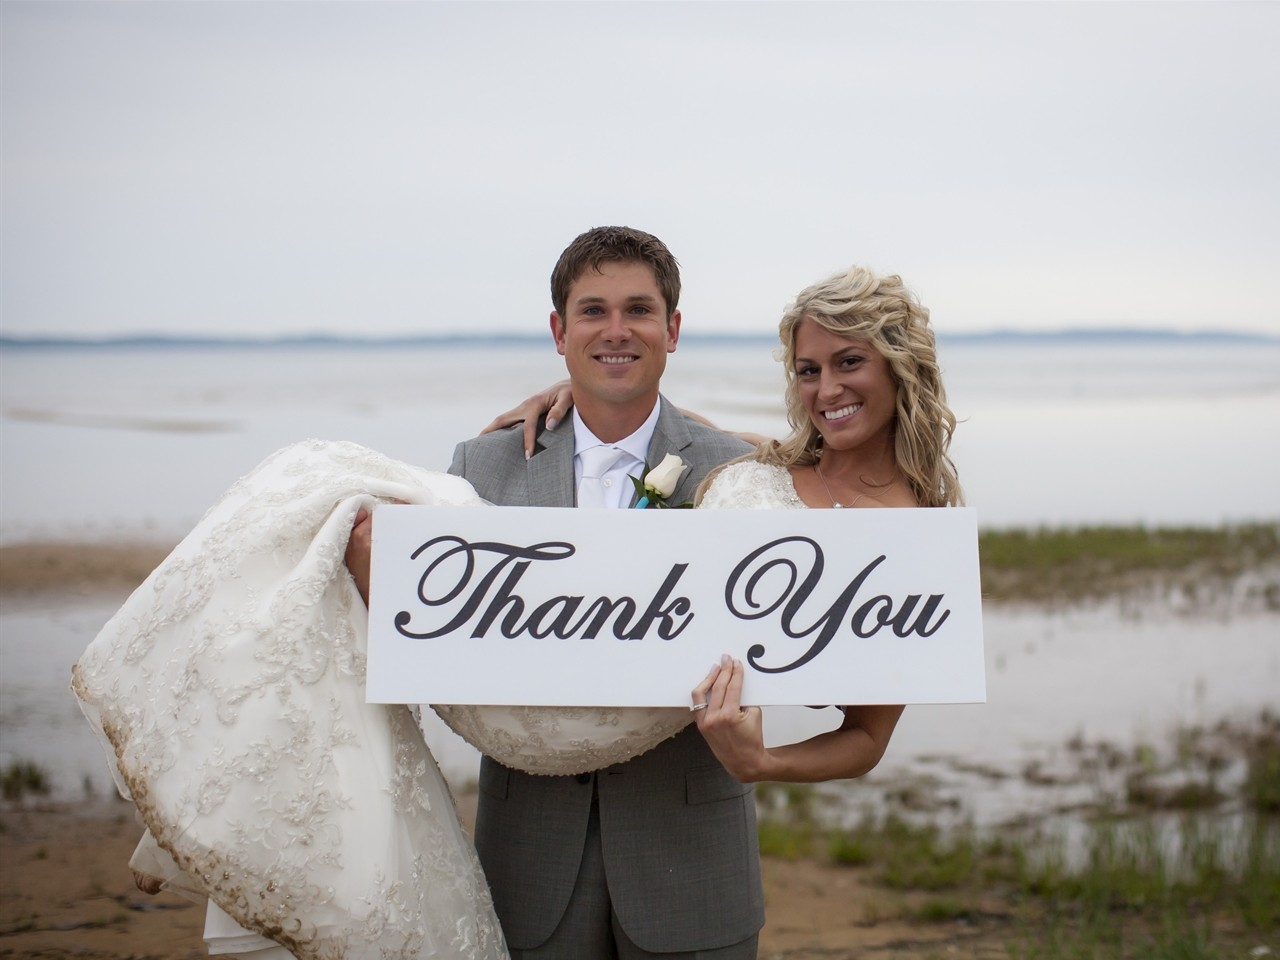 Couple Just Married at Cherry Tree Inn